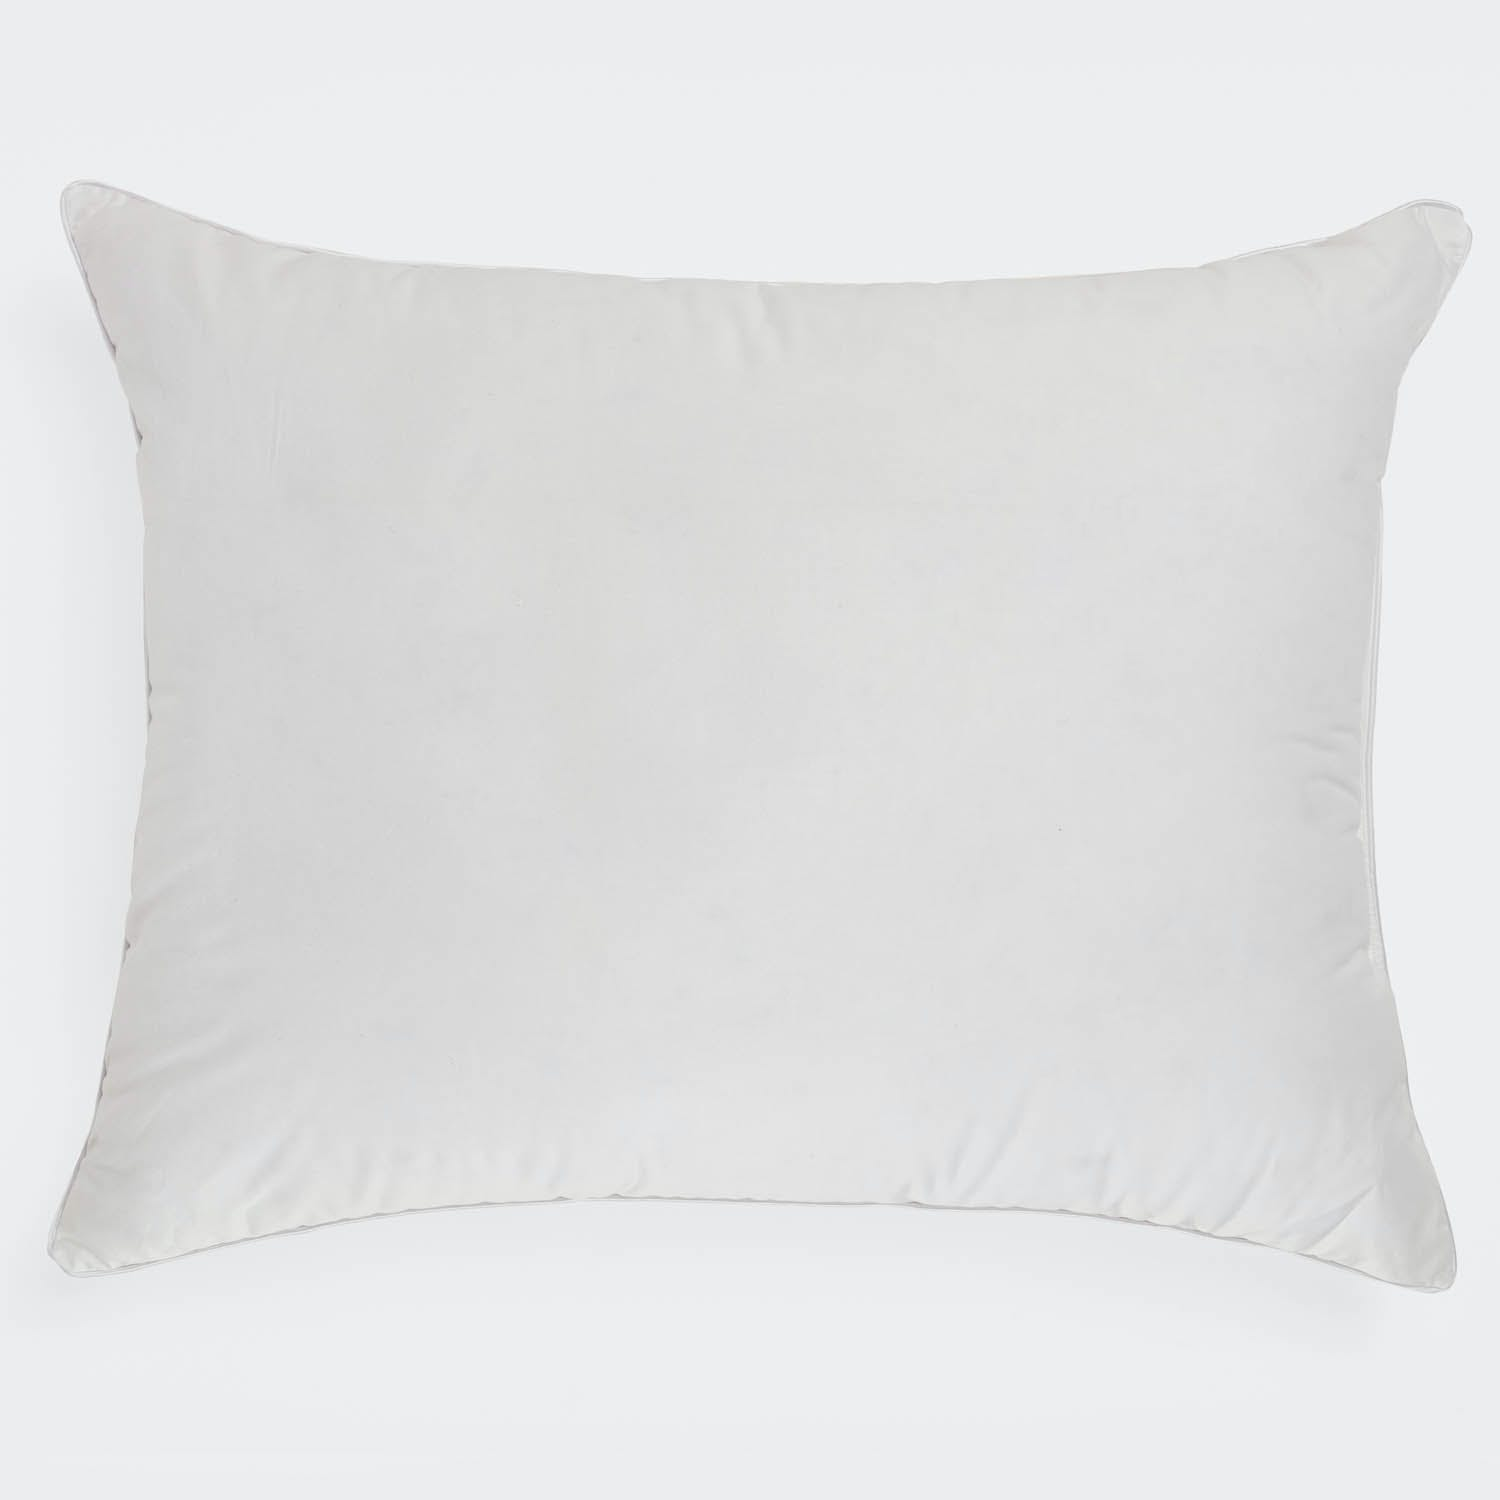 Product Image - Nirvana Firm Pillow